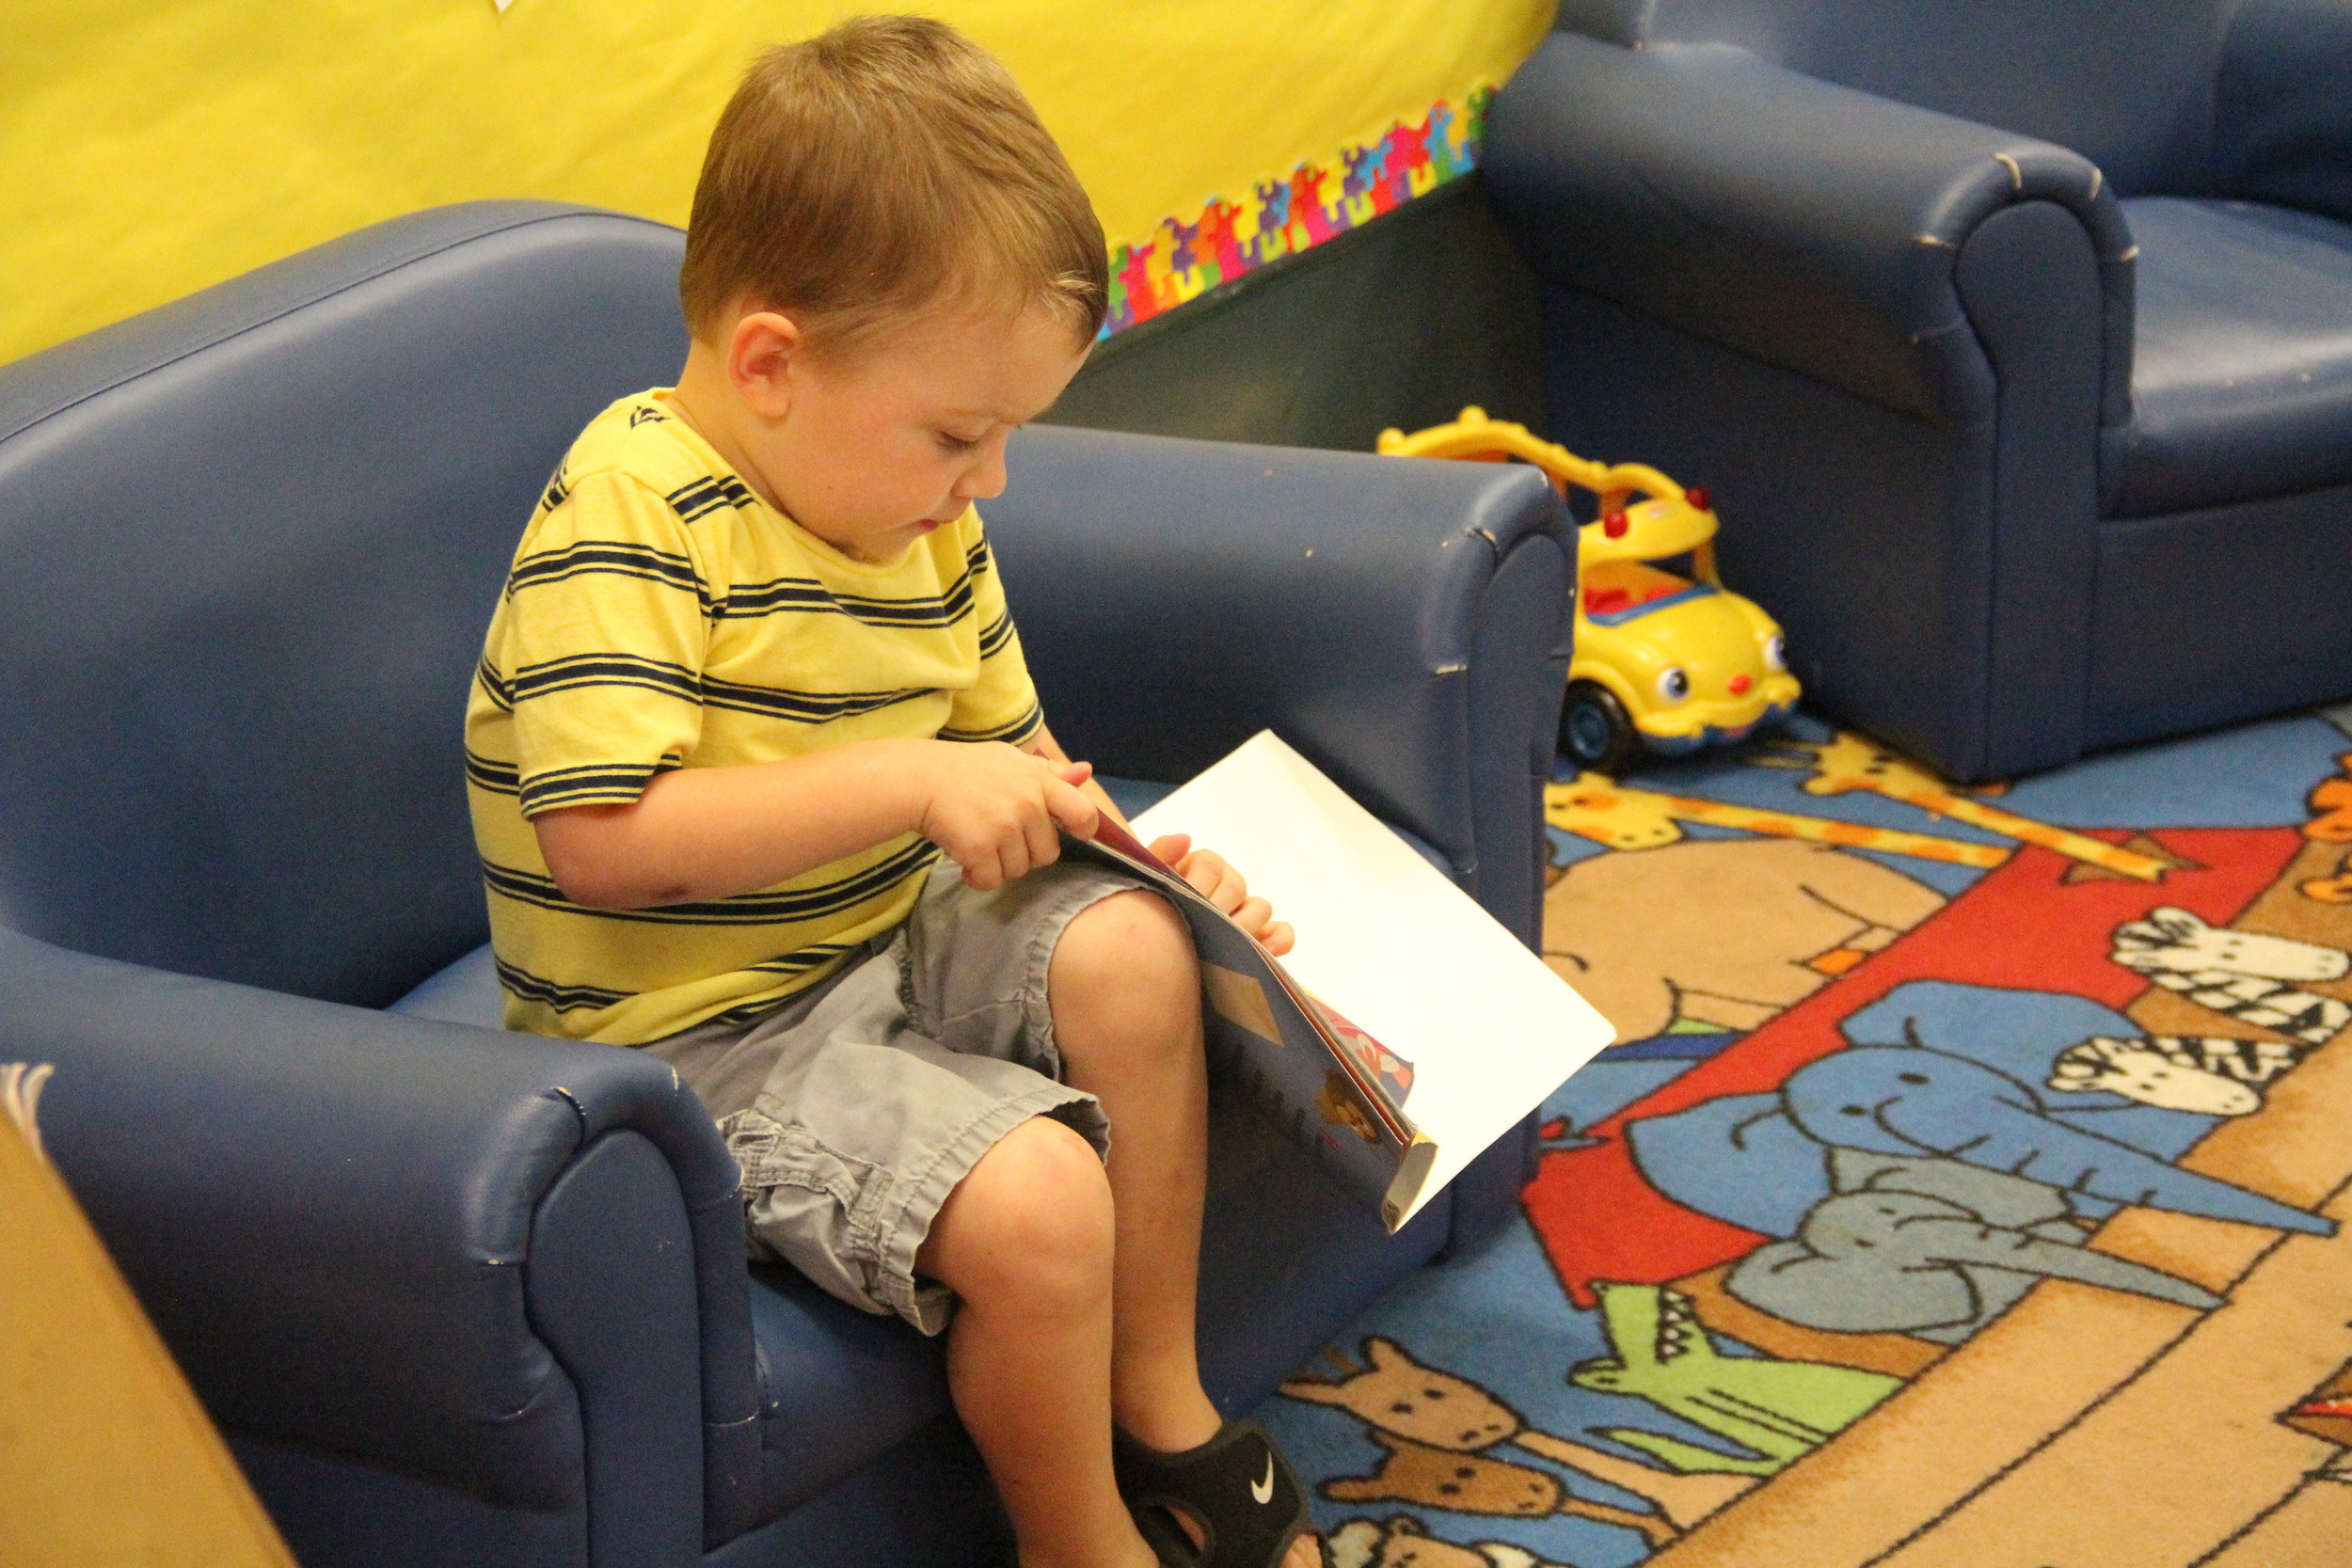 We encourage all of our kids to read! We start early by using picture books and a comfortable environment to encourage this lifelong skill.